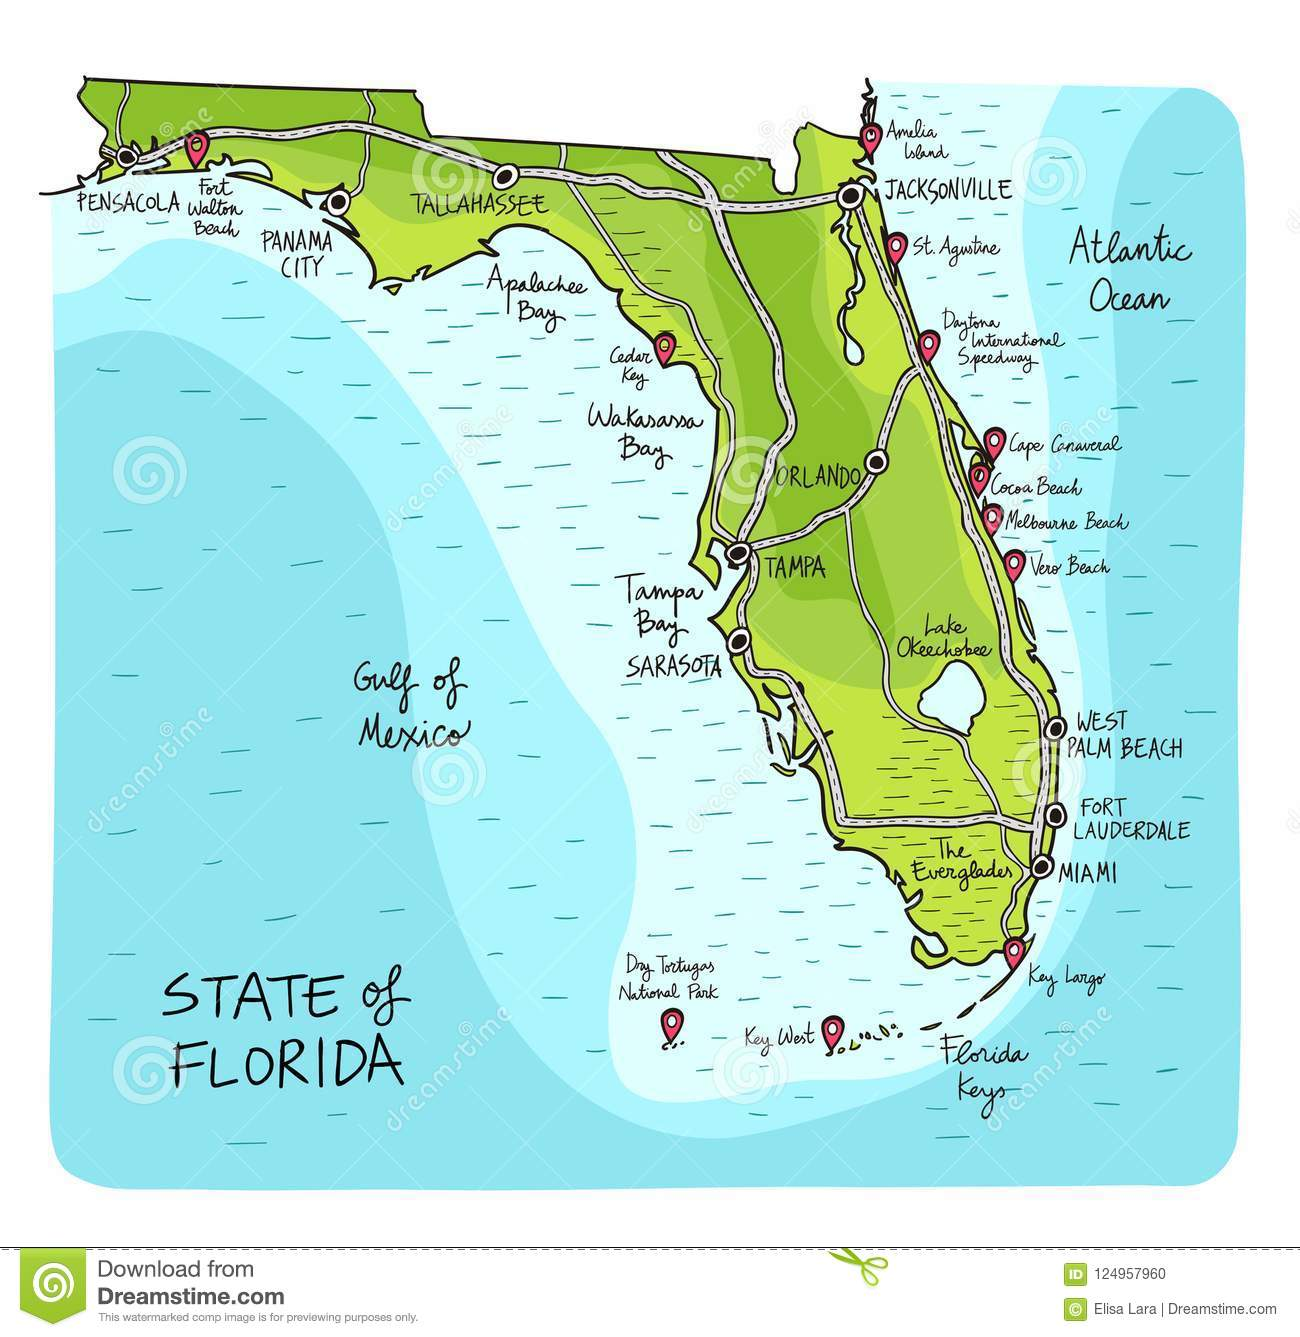 The Map Of Florida With The Cities.Hand Drawn Map Of Florida With Main Cities And Point Of Interest